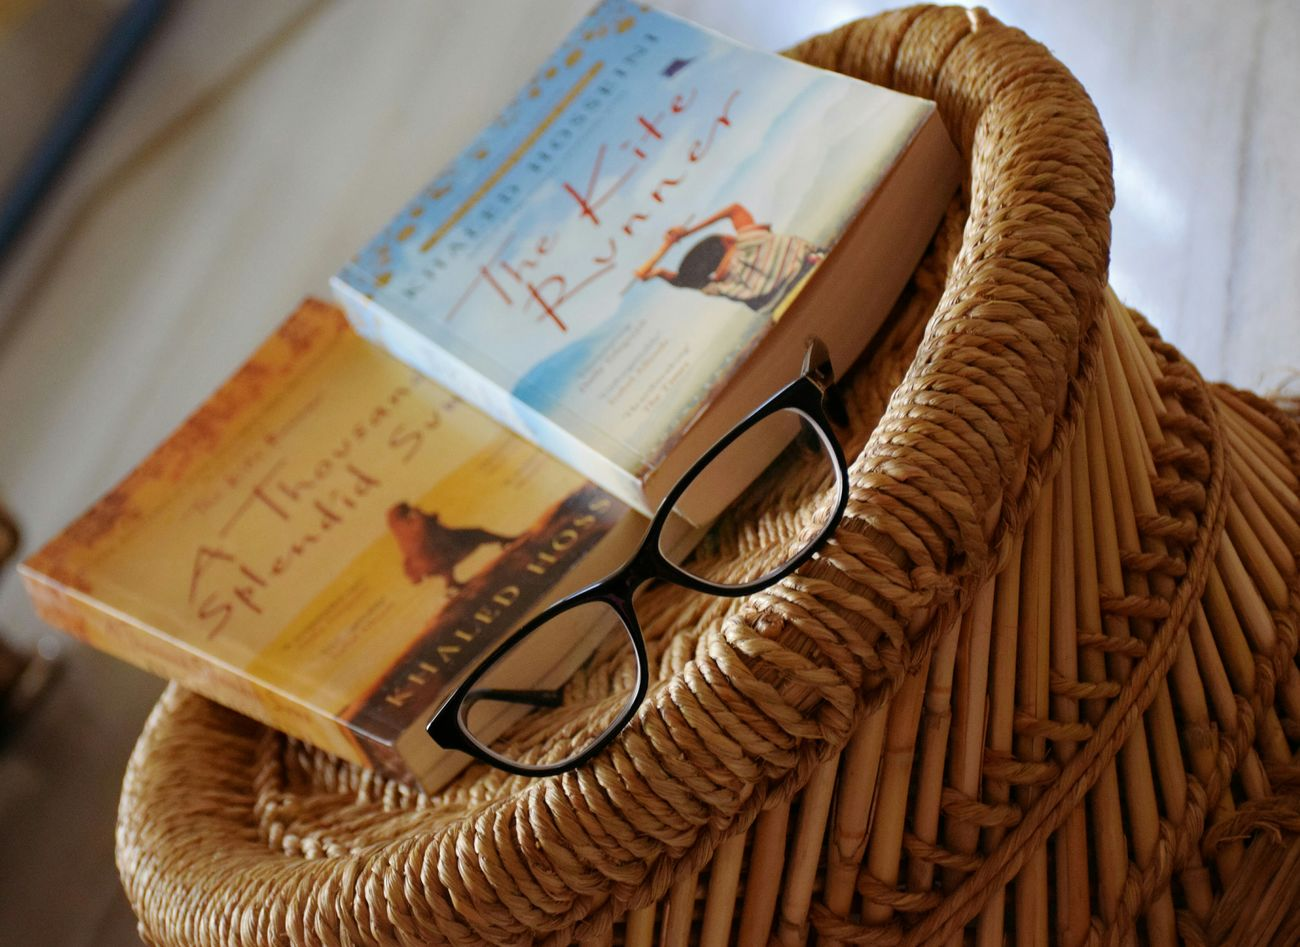 Two great books together and the third one need to be added to the list. KhalidHossaini The Kite Runner Thousand Splendid Suns Booklover Bookphotography Glasses 👓